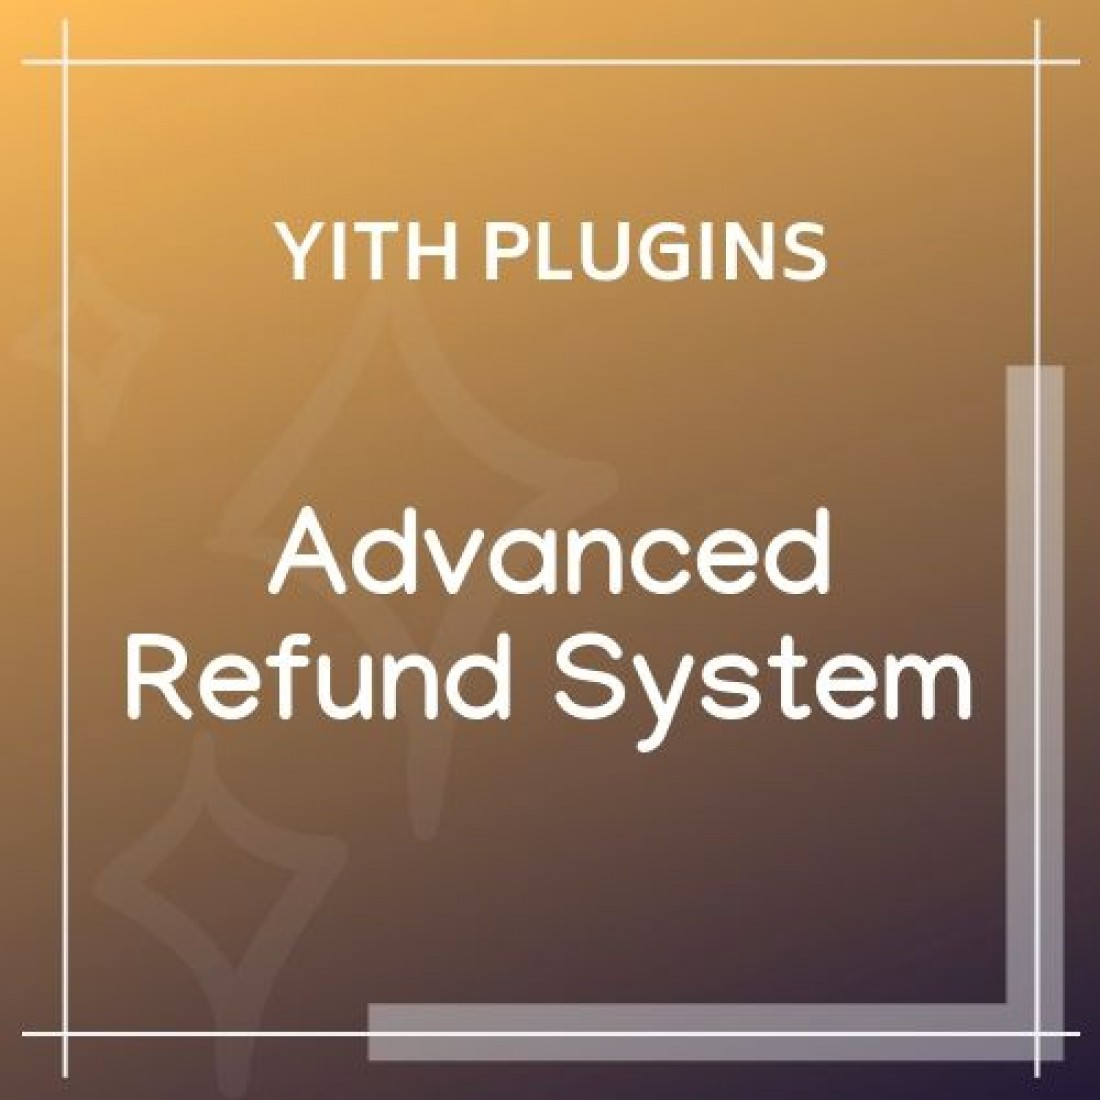 دانلود افزونه YITH Advanced Refund System Premium 1.1.12